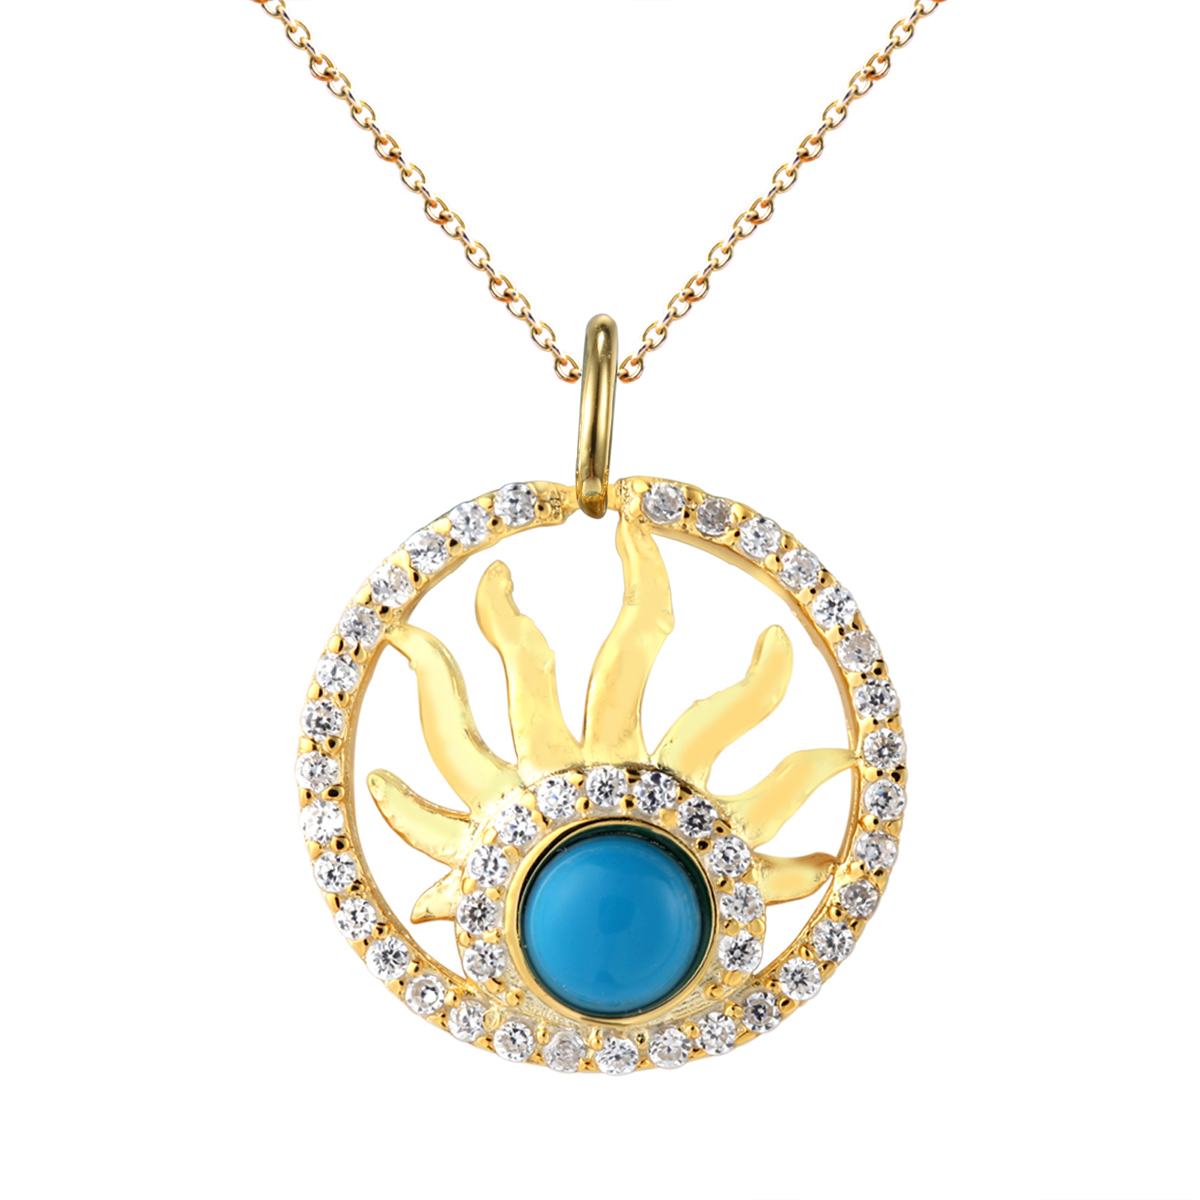 wholesale round 925 sterling silver pendant with turquoise and cz